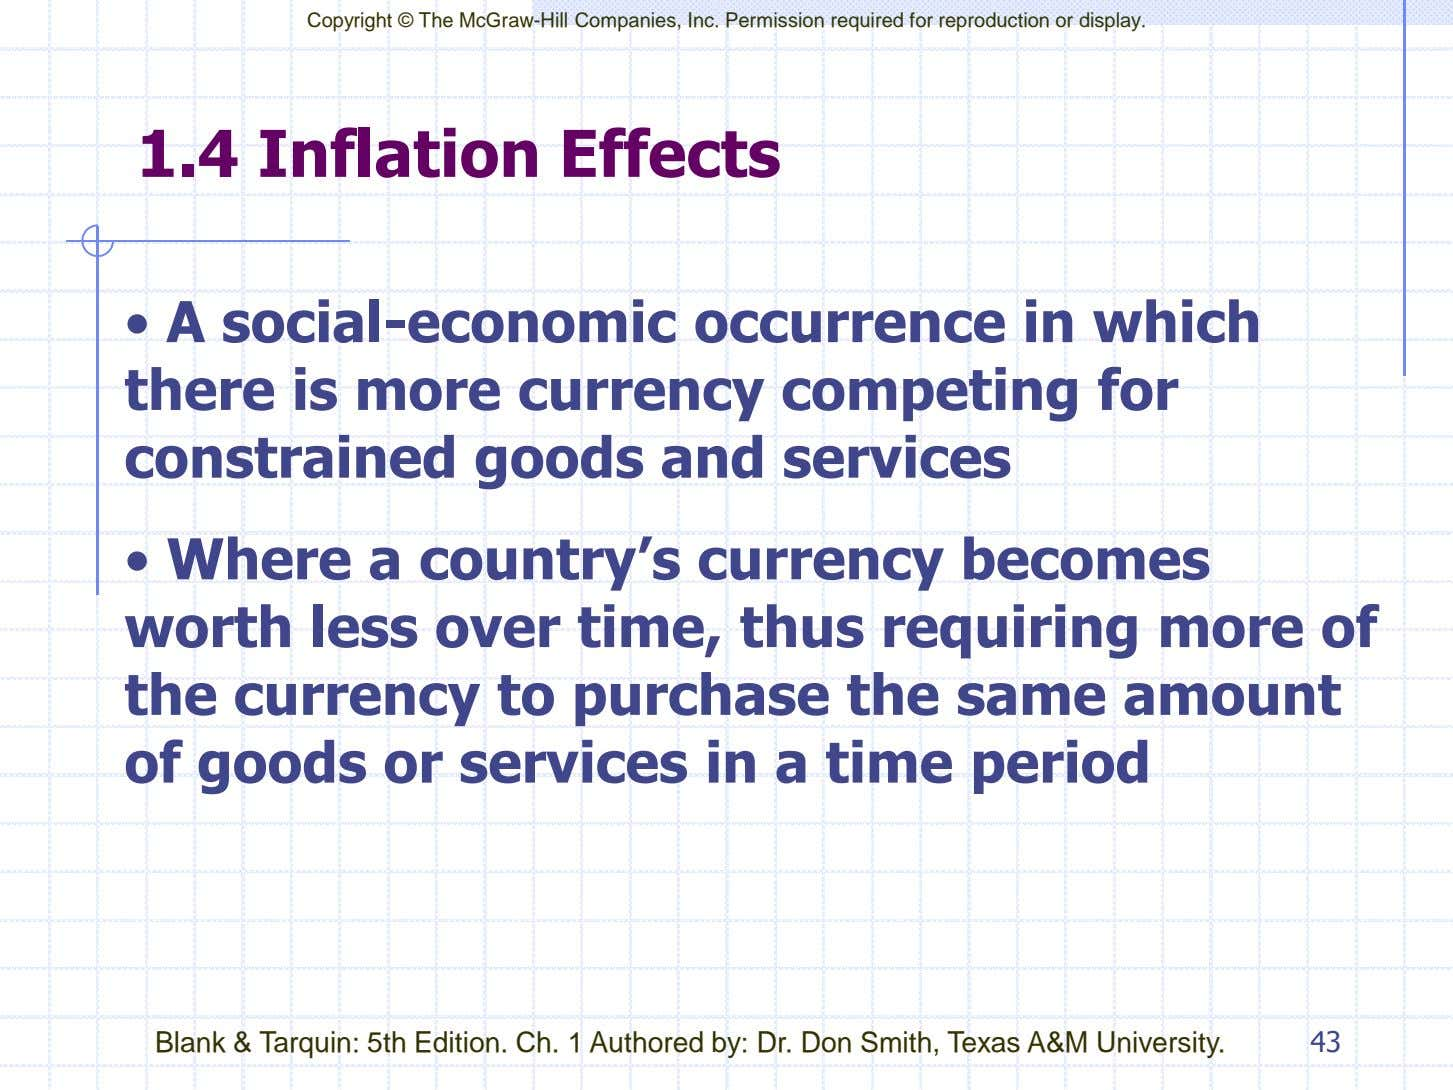 Copyright © The McGraw-Hill Companies, Inc. Permission required for reproduction or display. 1.4 Inflation Effects